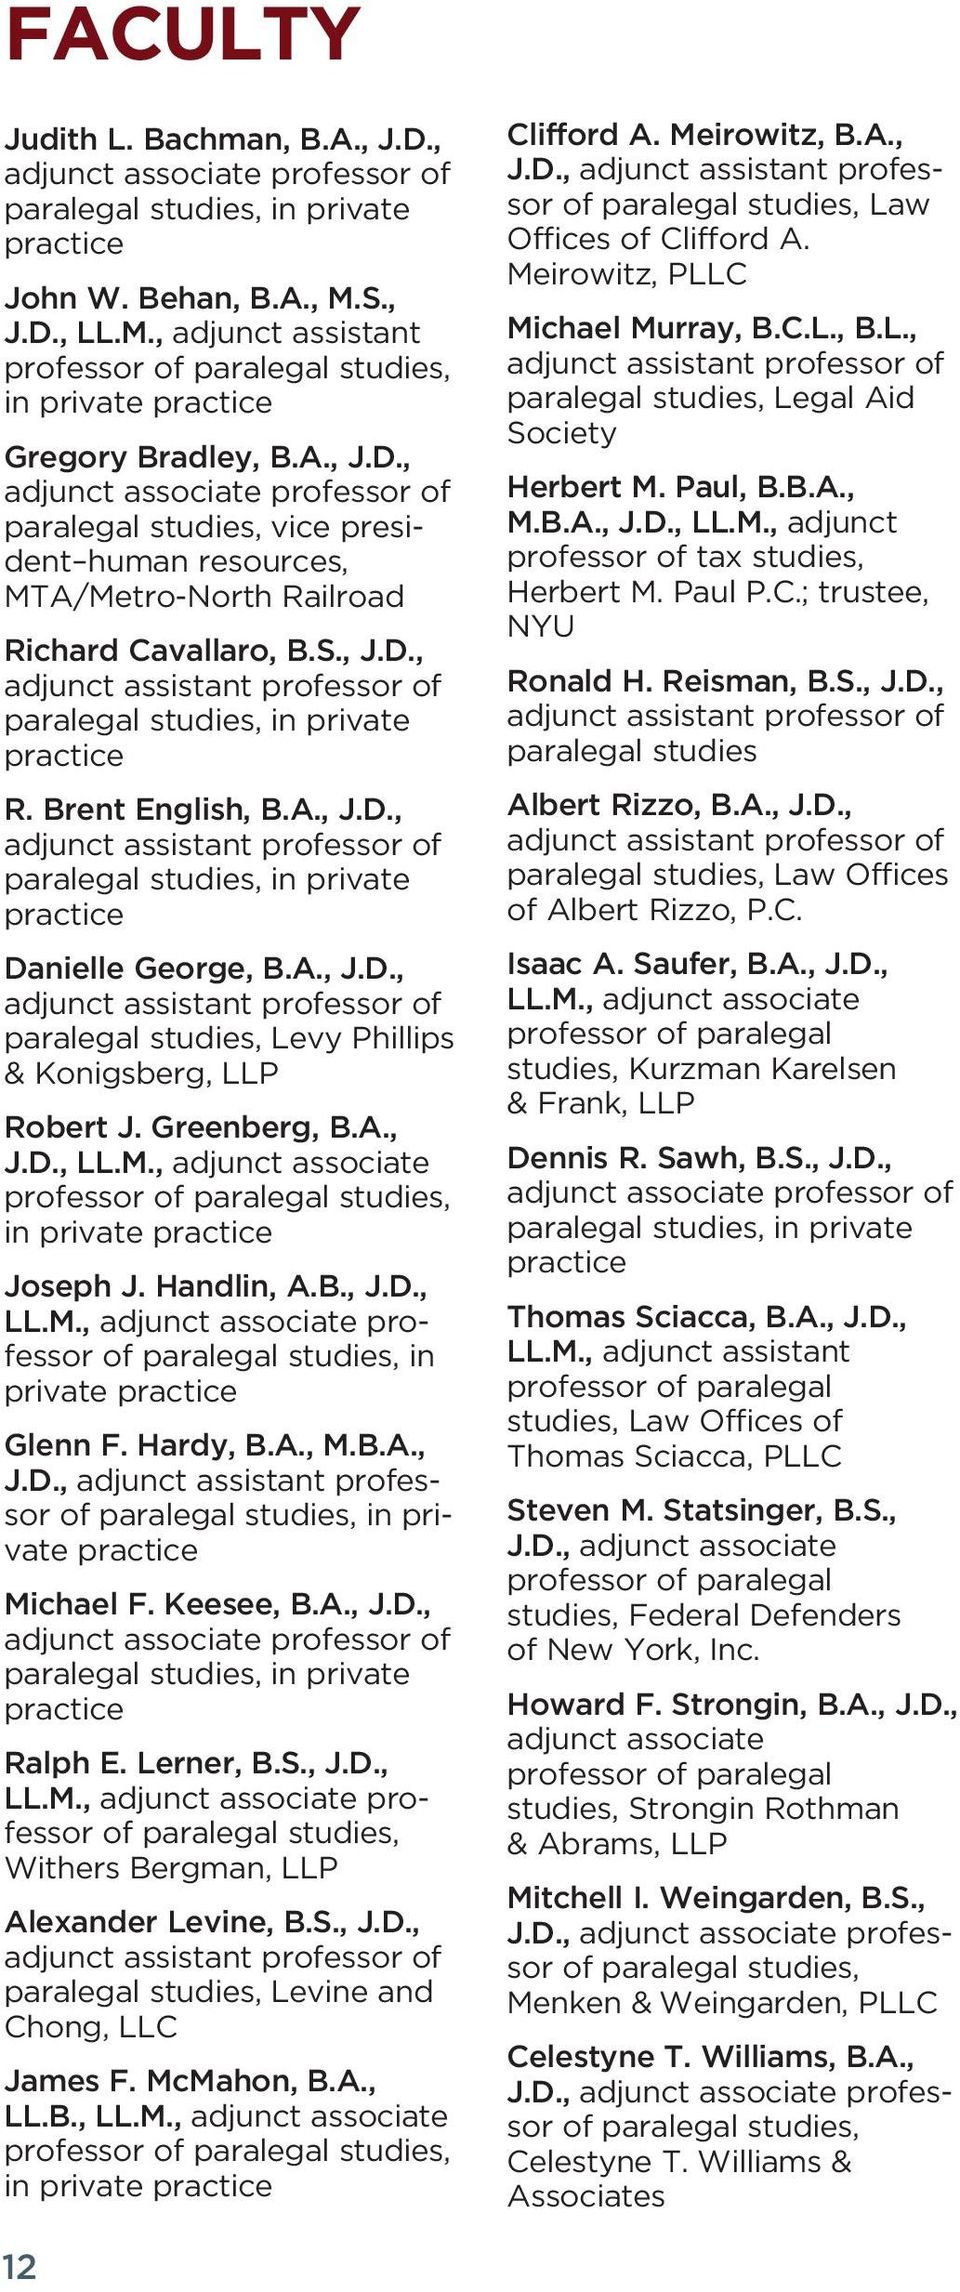 S., J.D., adjunct assistant professor of paralegal studies, in private practice R. Brent English, B.A., J.D., adjunct assistant professor of paralegal studies, in private practice Danielle George, B.